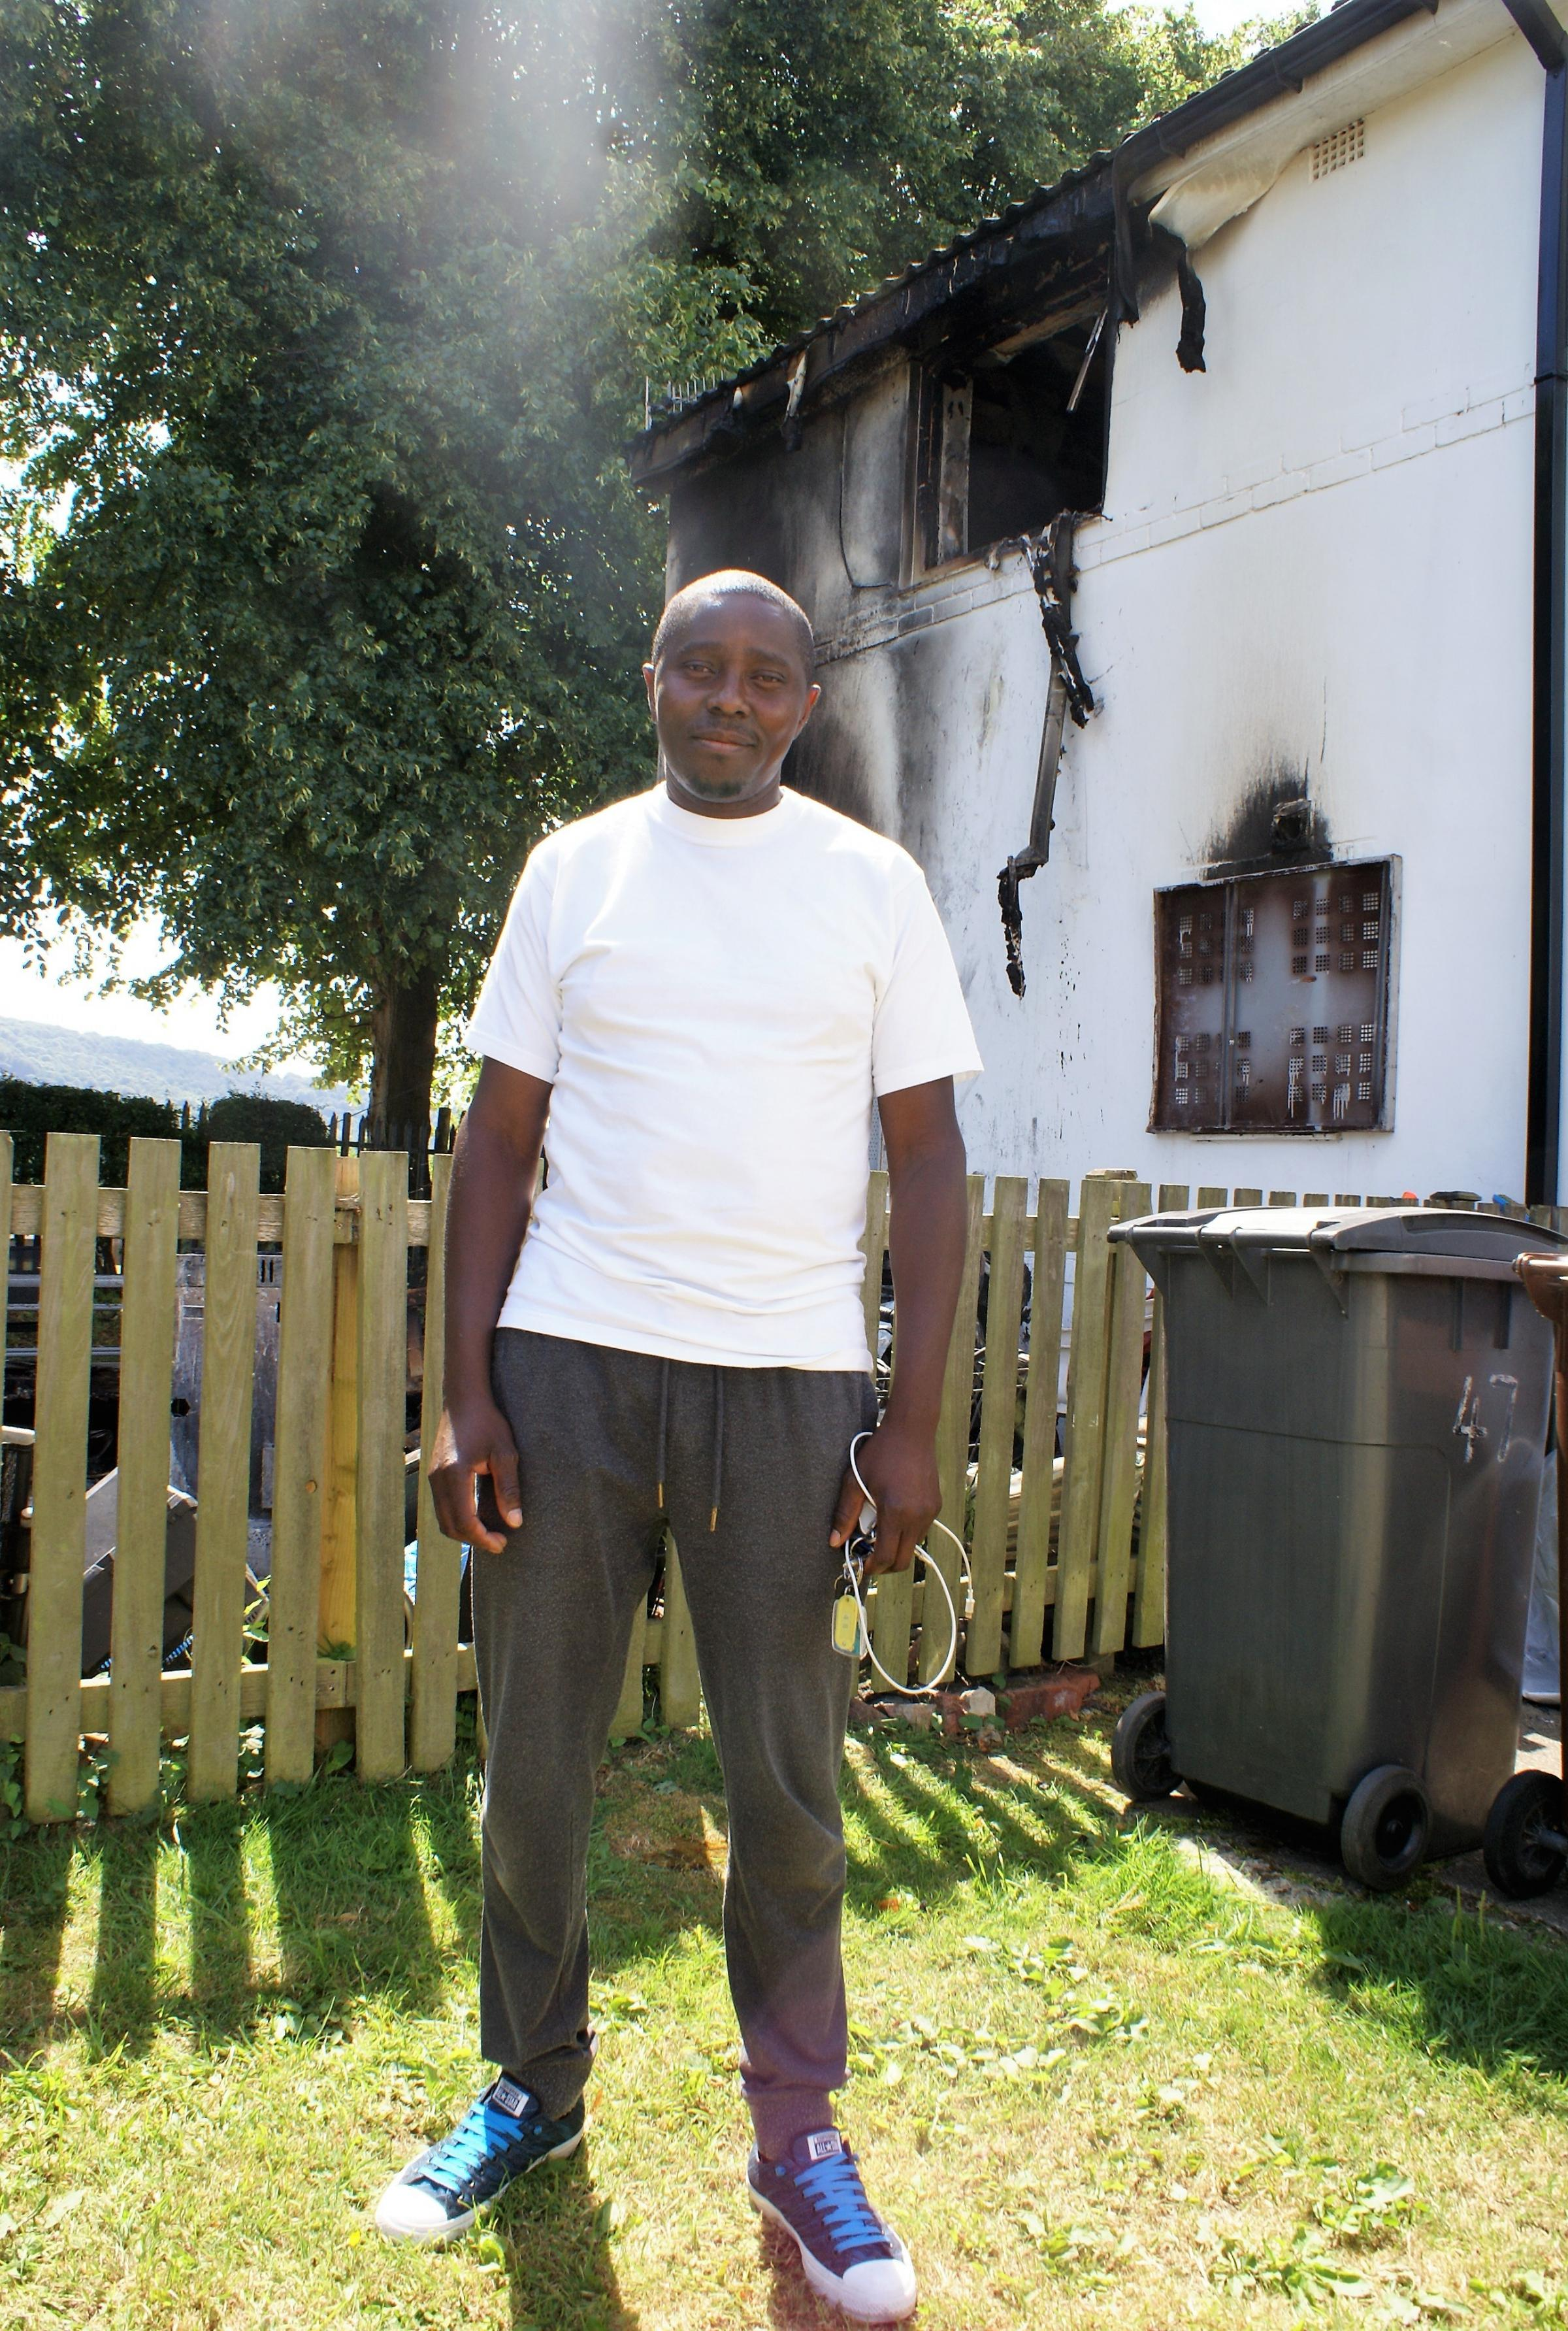 Olivier Masekessabou beside his neighbour's burnt-out house on The Crossways, Otley